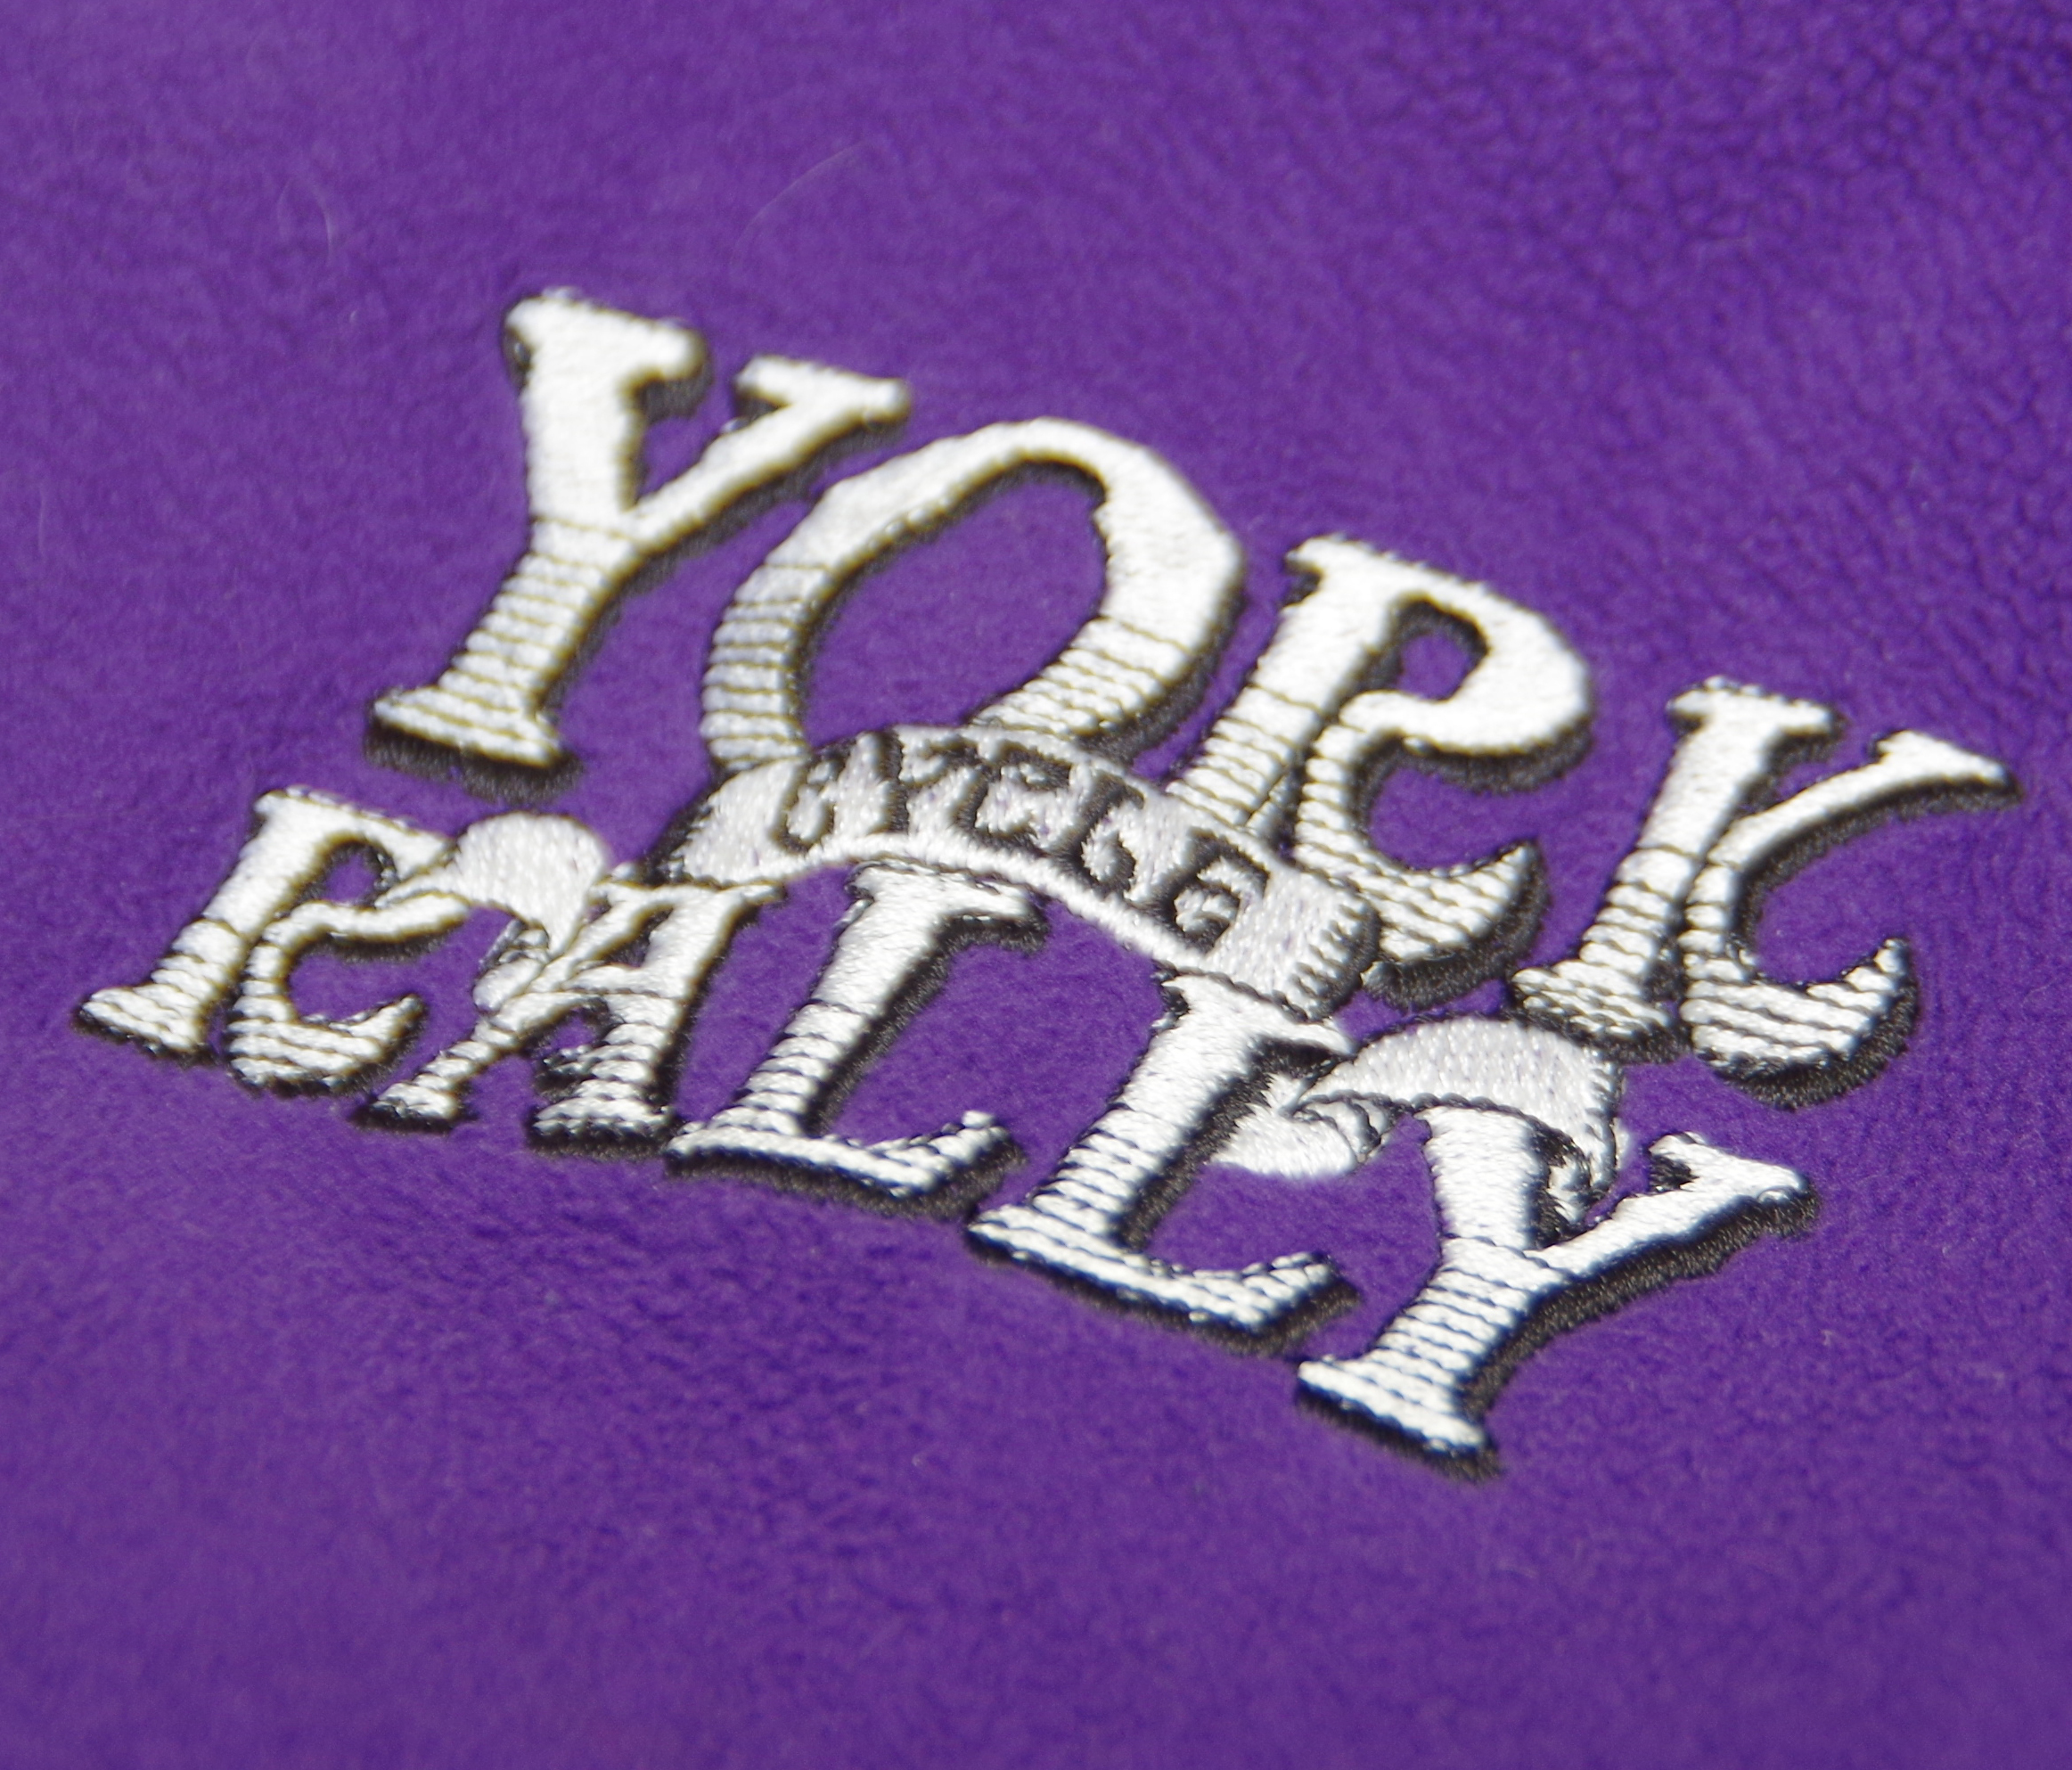 York Rally logo embroidered into purple fleece